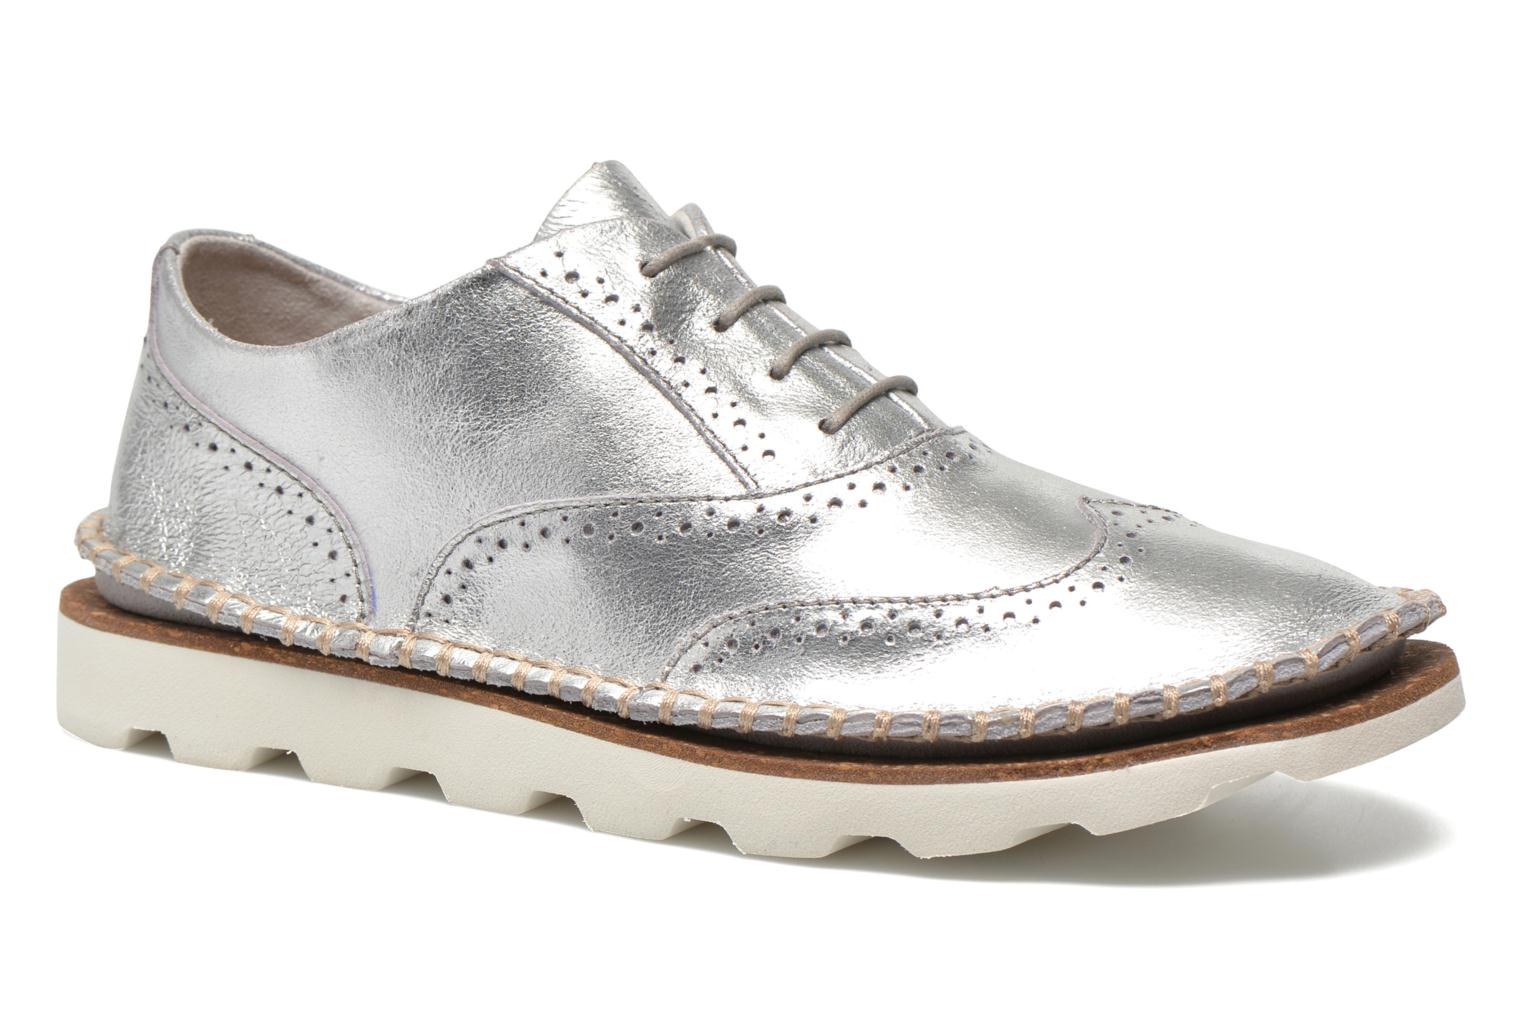 Clarks Damara Rose Lace-up Shoes Color: Silver